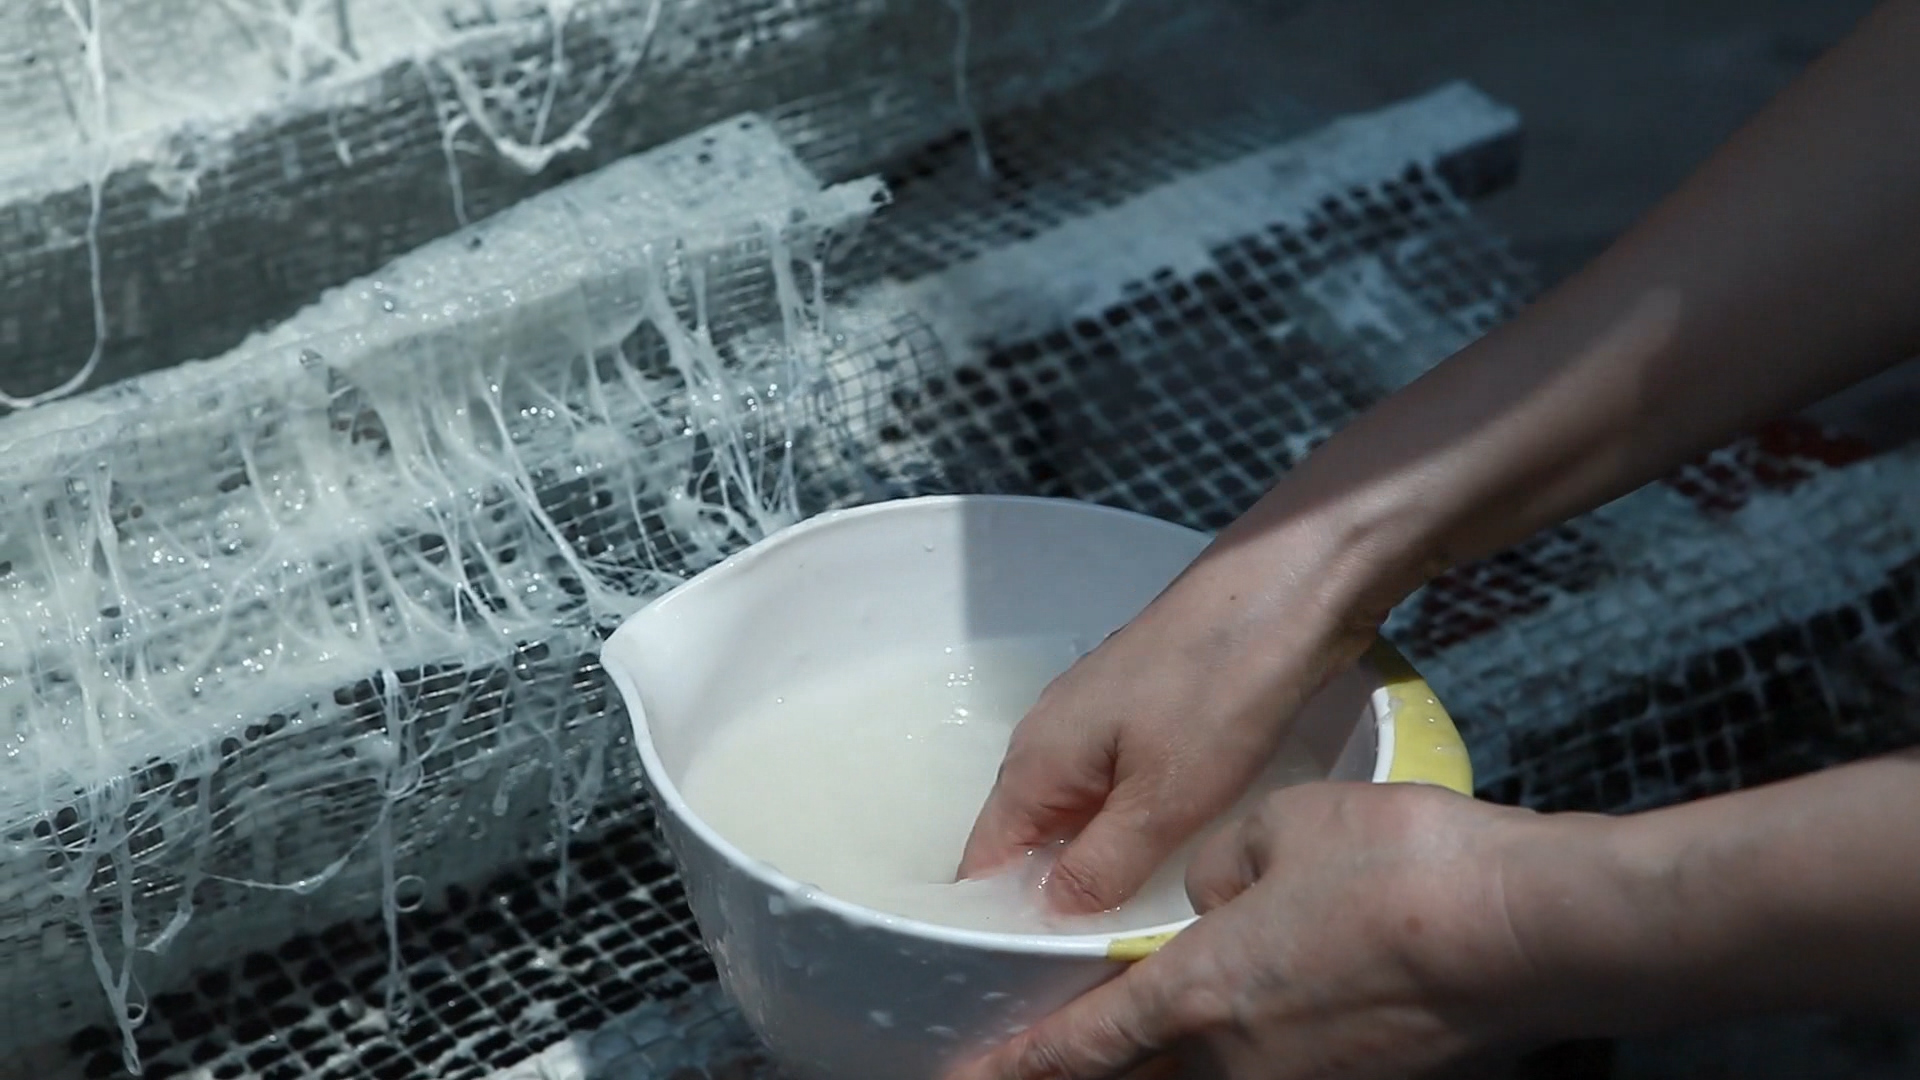 Shi Hui applying pulp to a mesh frame. Video still taken from Shi Hui directed by Chen Yi, produced by the China Academy of Art, Hangzhou.